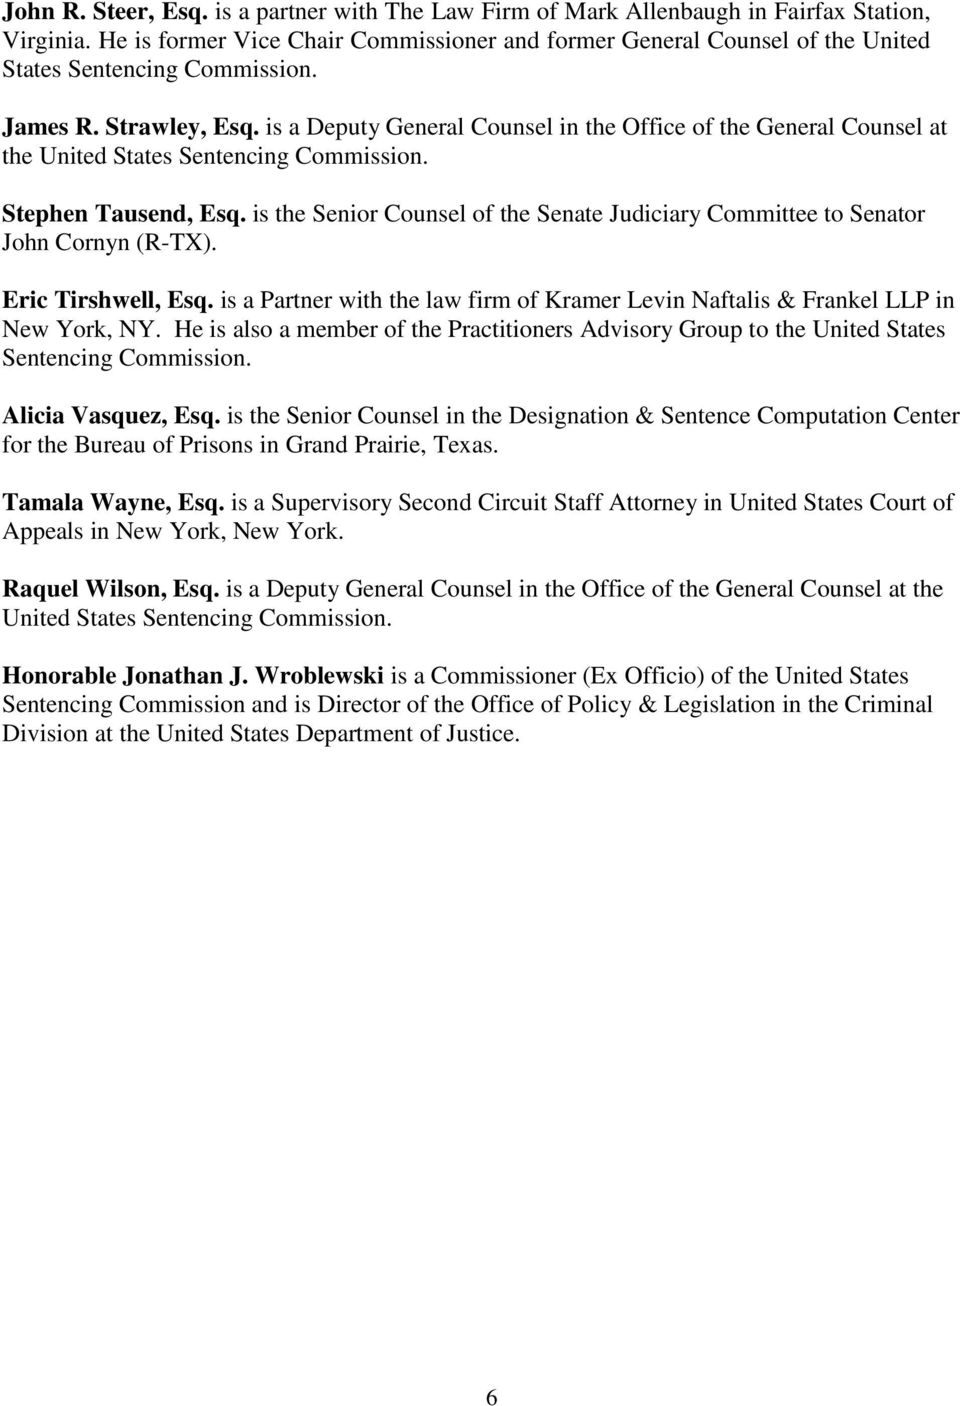 is a Deputy General Counsel in the Office of the General Counsel at the United States Sentencing Stephen Tausend, Esq.